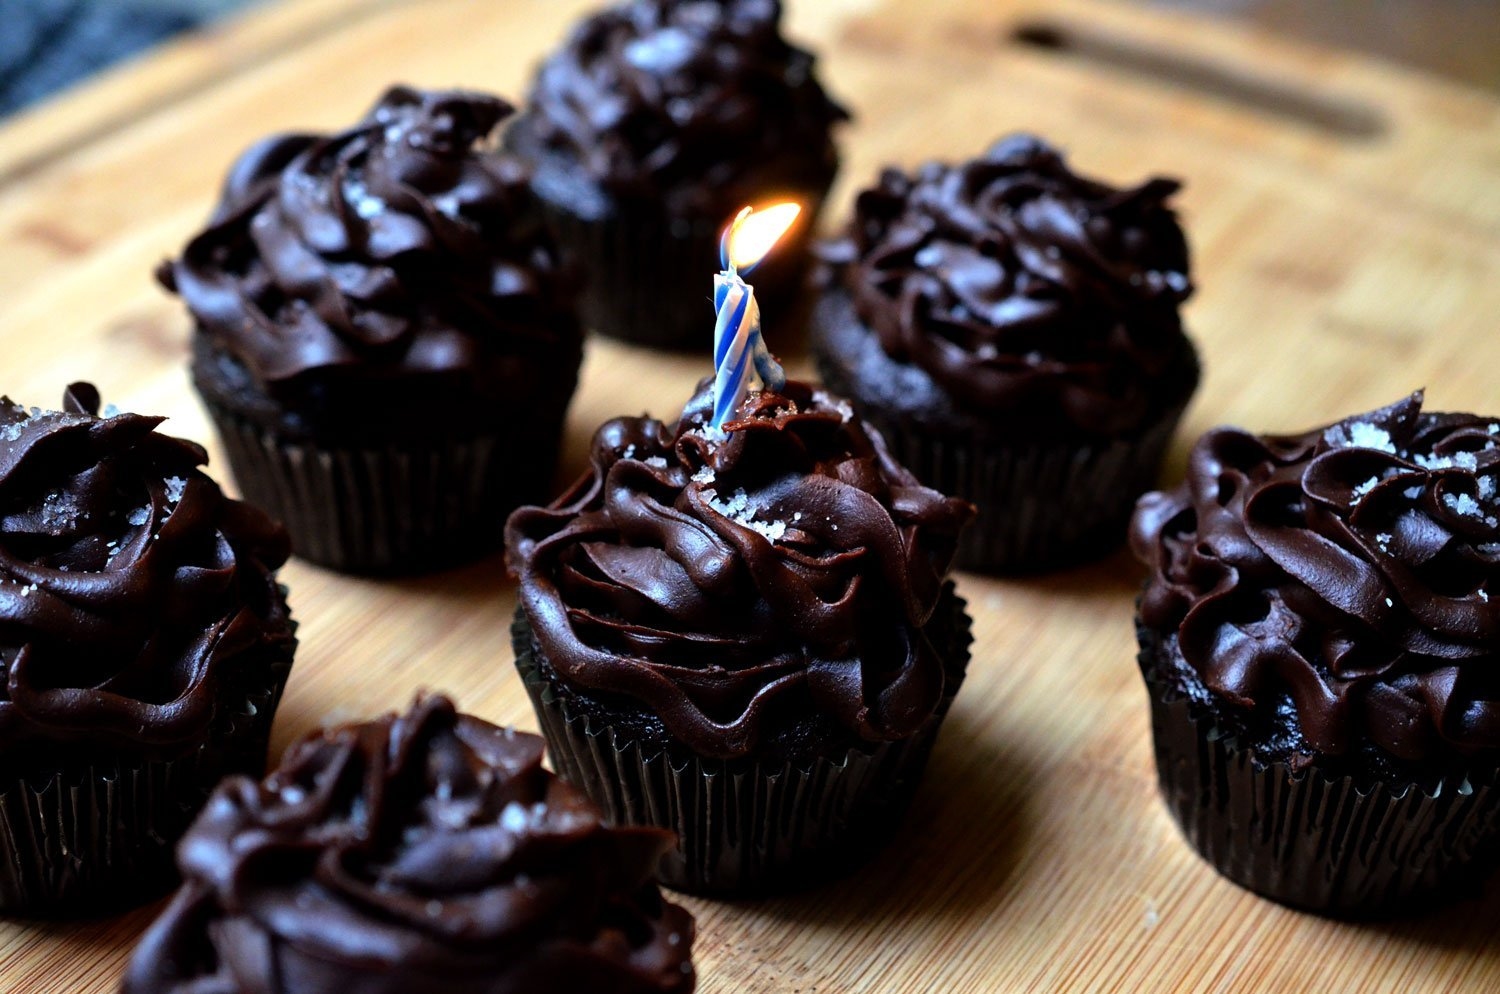 Chocolate Cupcakes with Salted Chocolate Ganache Icing